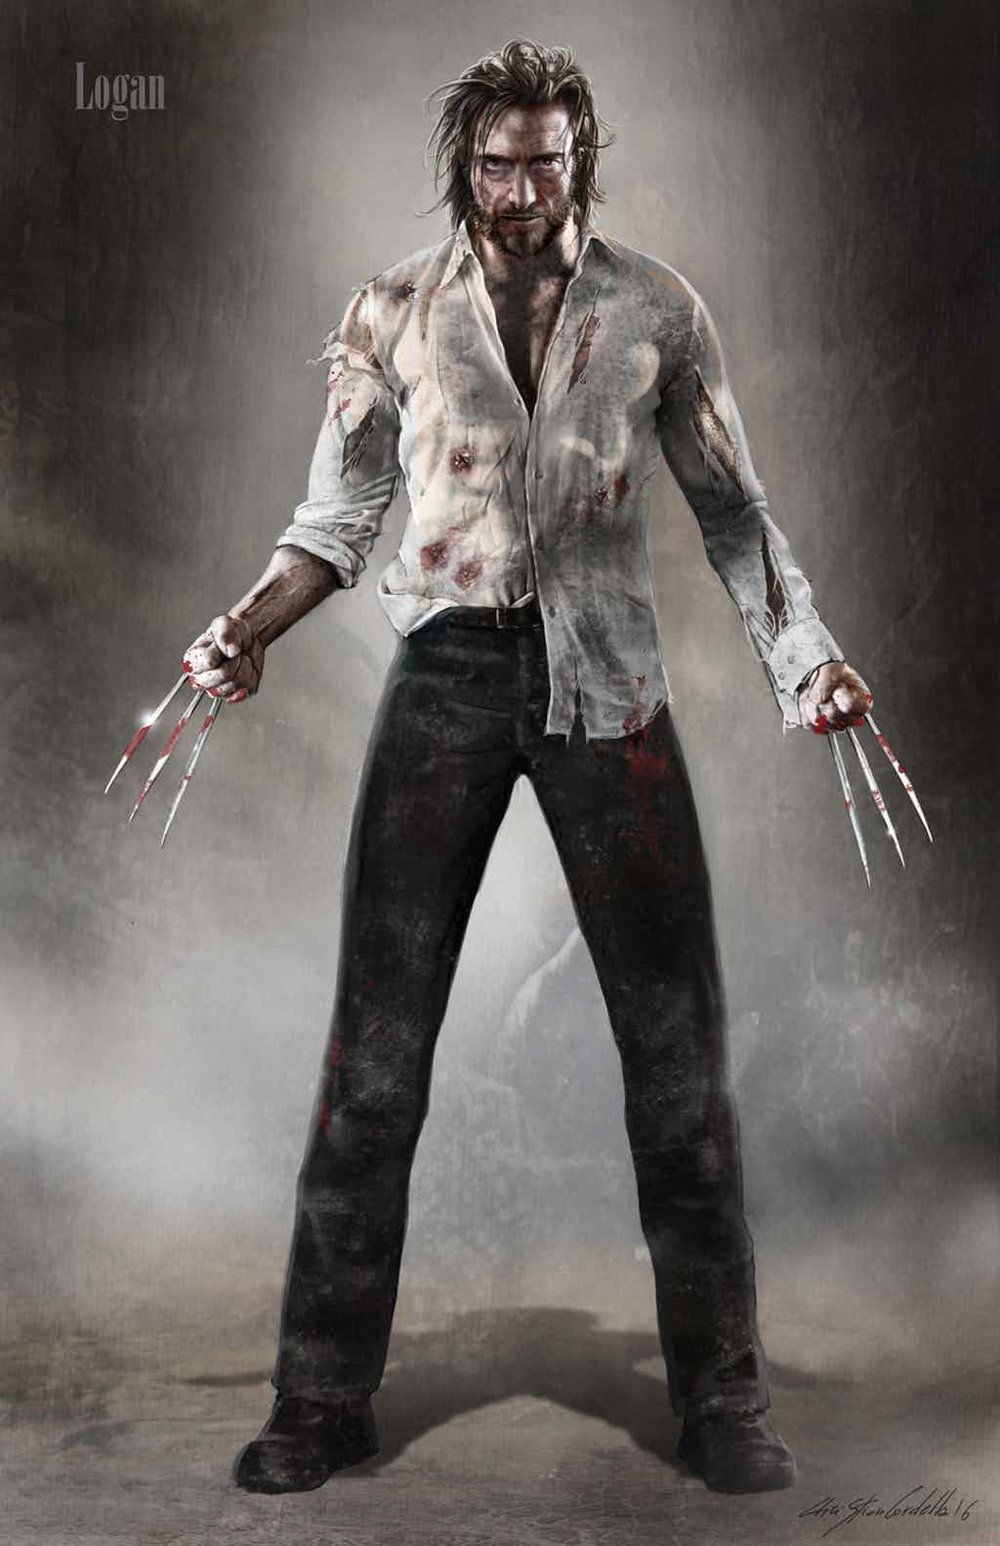 logan-concept-art-shows-early-designs-for-wolverine-x-23-professor-x-and-caliban2